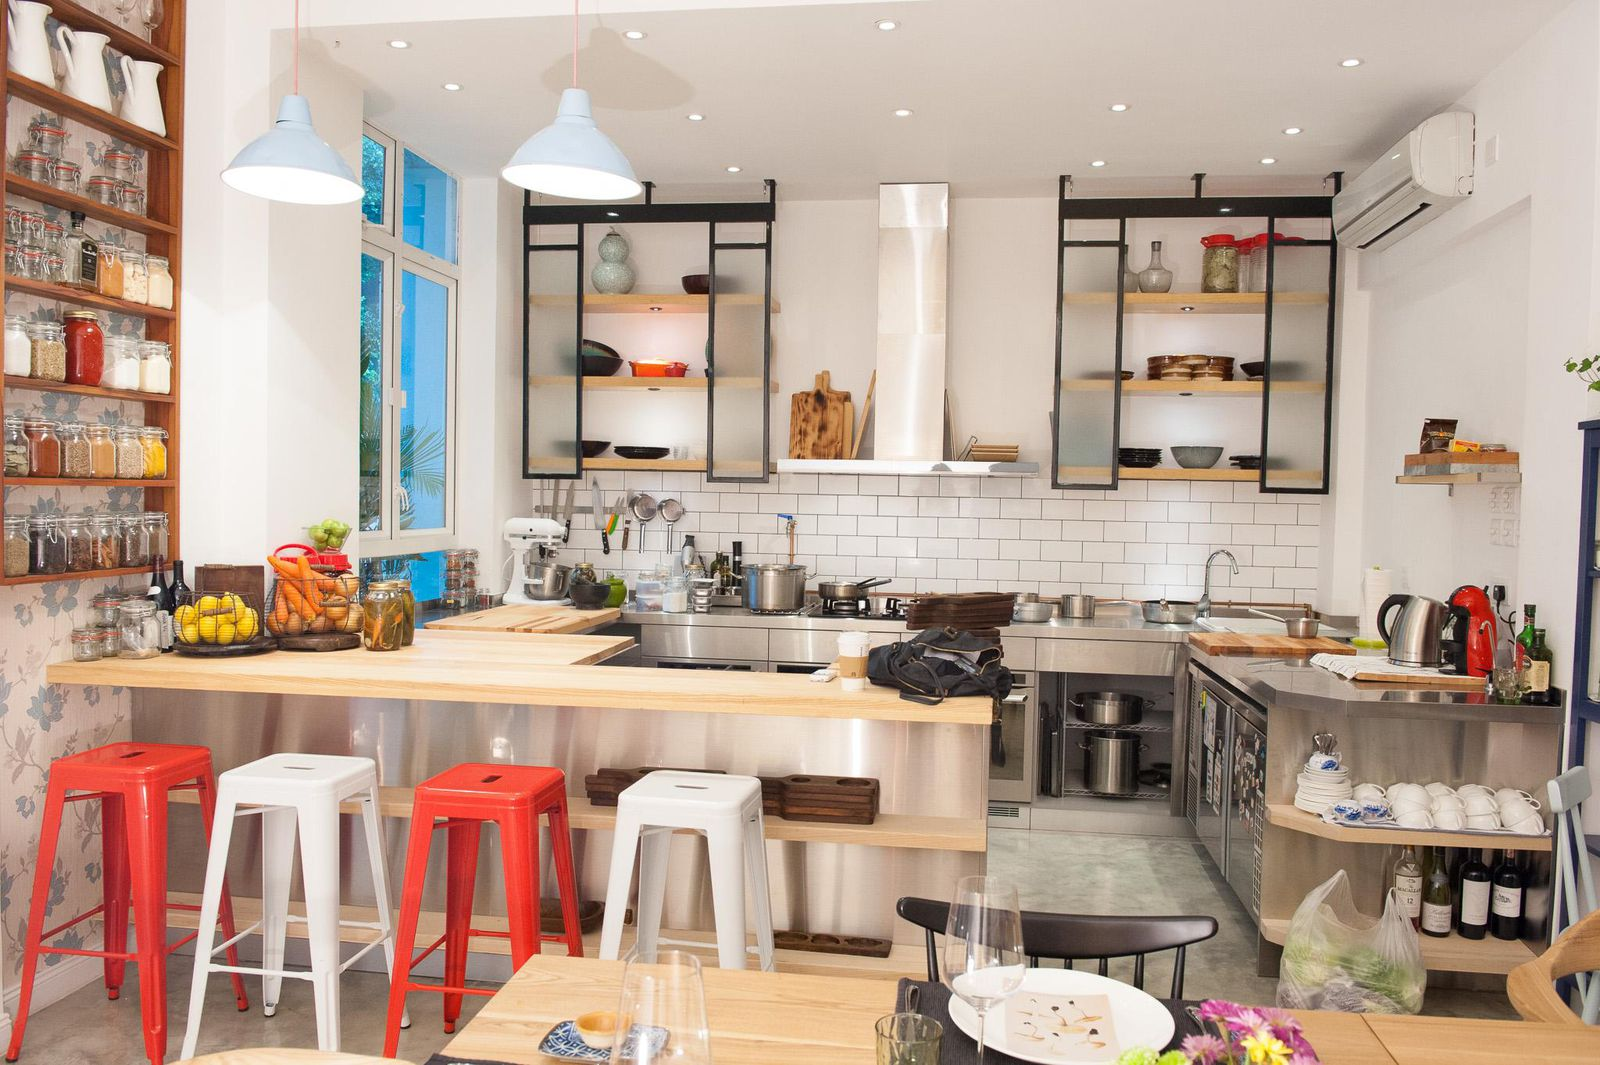 For your next party rent a kitchen the size of your apartment